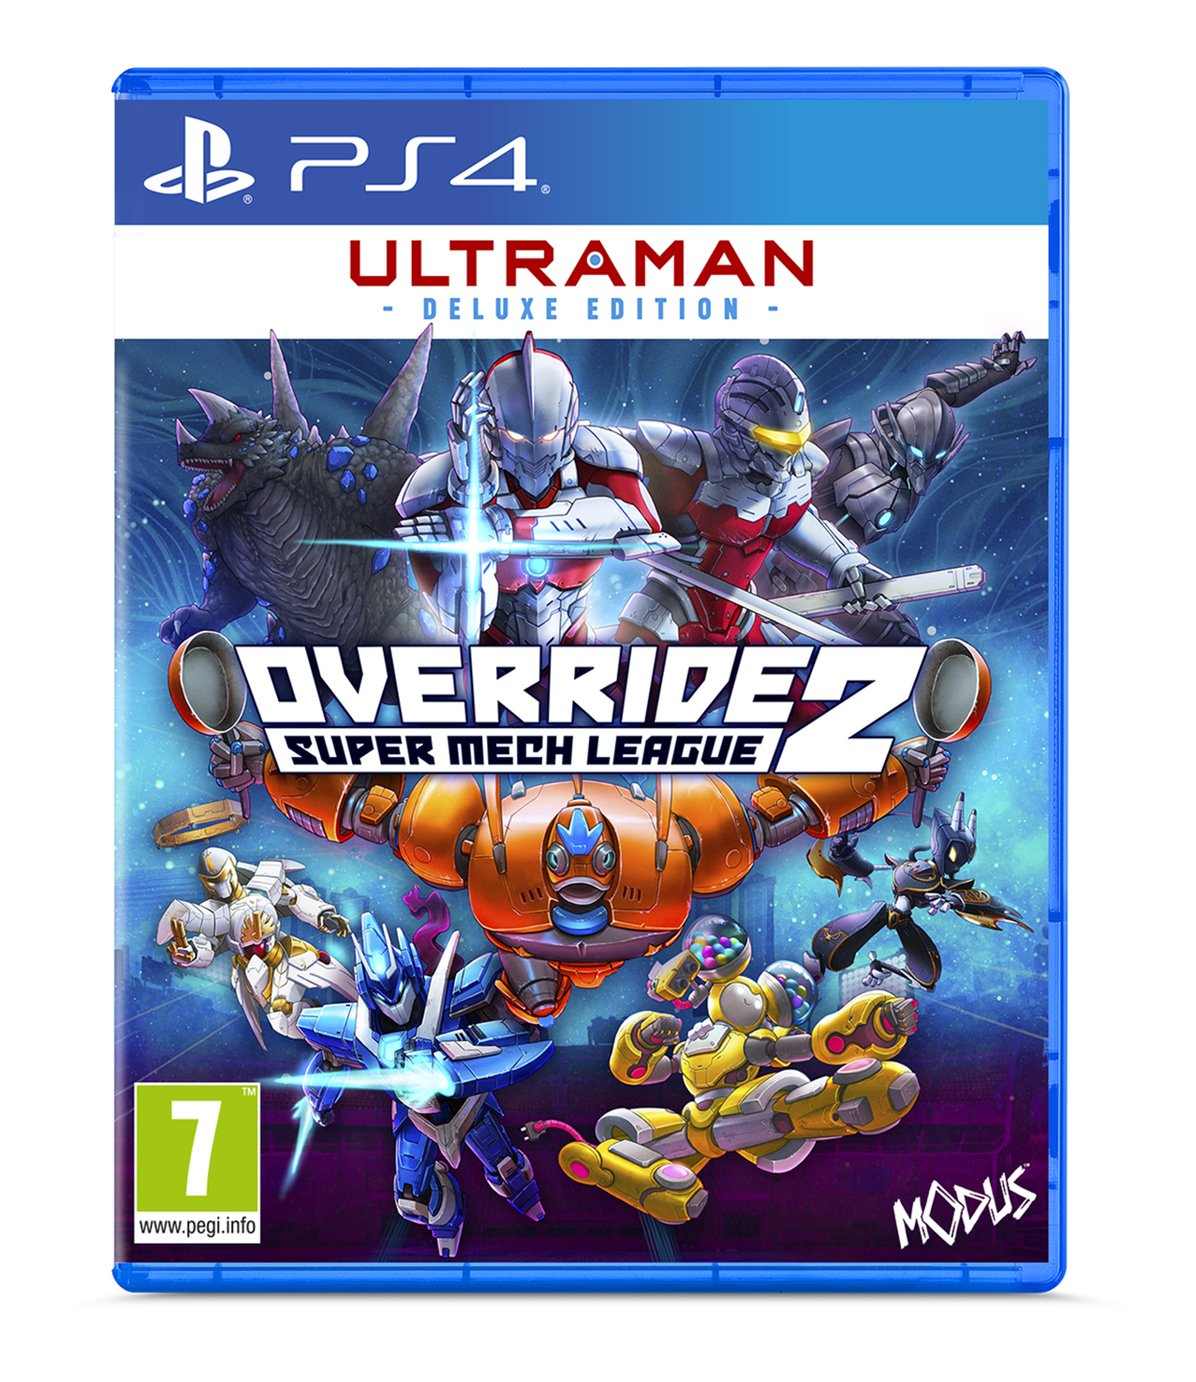 Override 2: Ultraman Edition PS4 Game